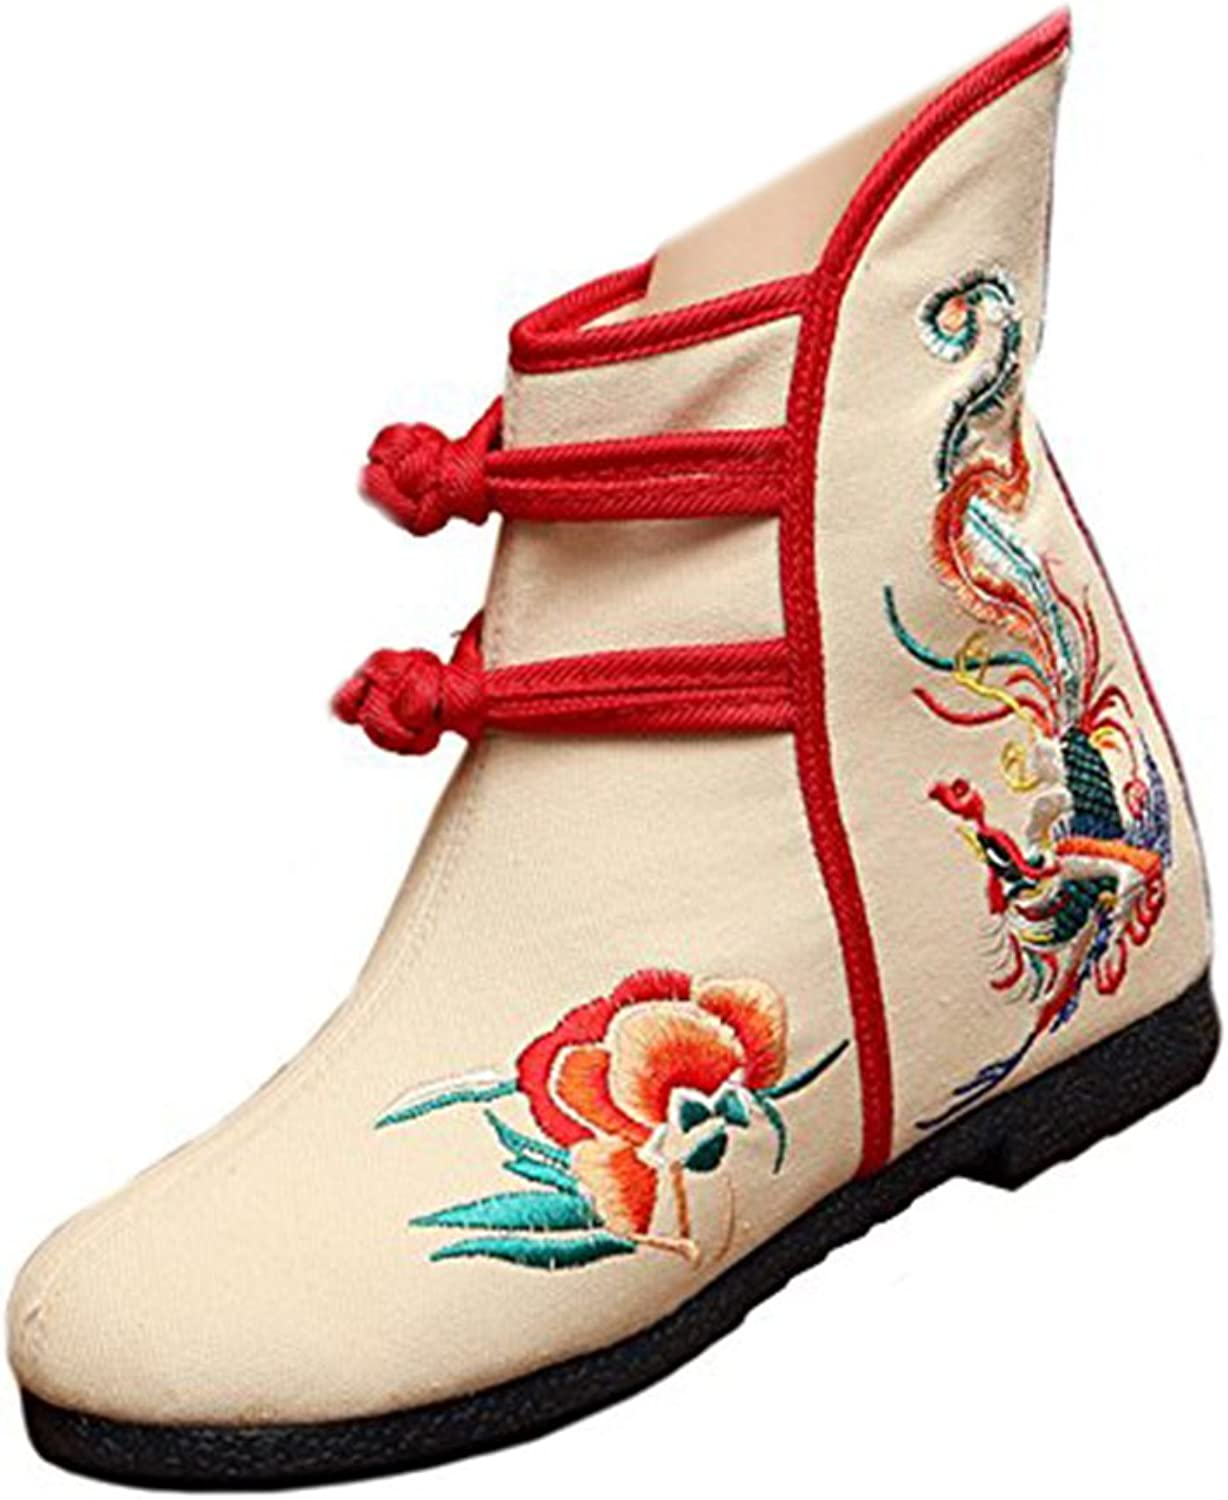 Shenghuajie Vintage Beijing Cloth shoes Embroidered Boots 12-01 Beige with Cotton